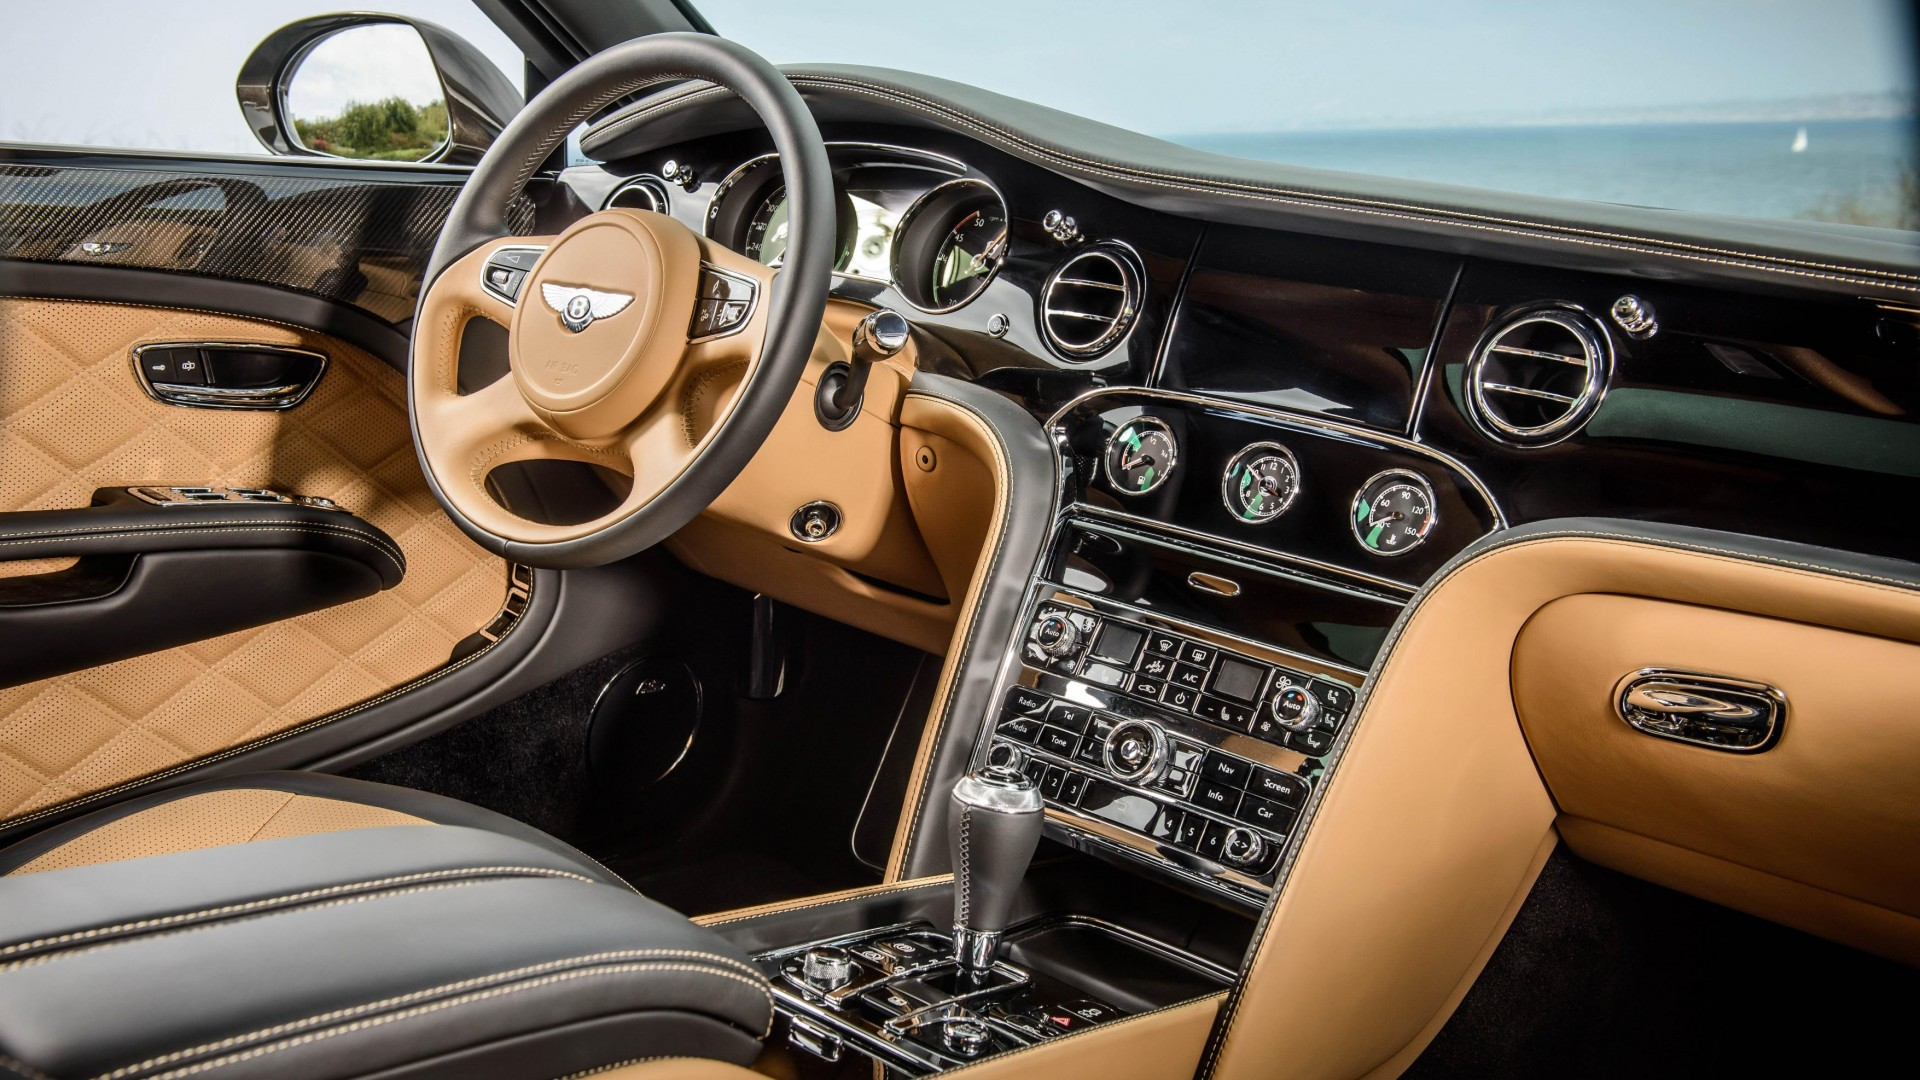 Бэнтли, салон, класс-люкс, Bentley Mulsanne, interior, luxury cars, Bentley, Flying B, metallic, leather, 2015 Detroit Auto Show. NAIAS (horizontal)